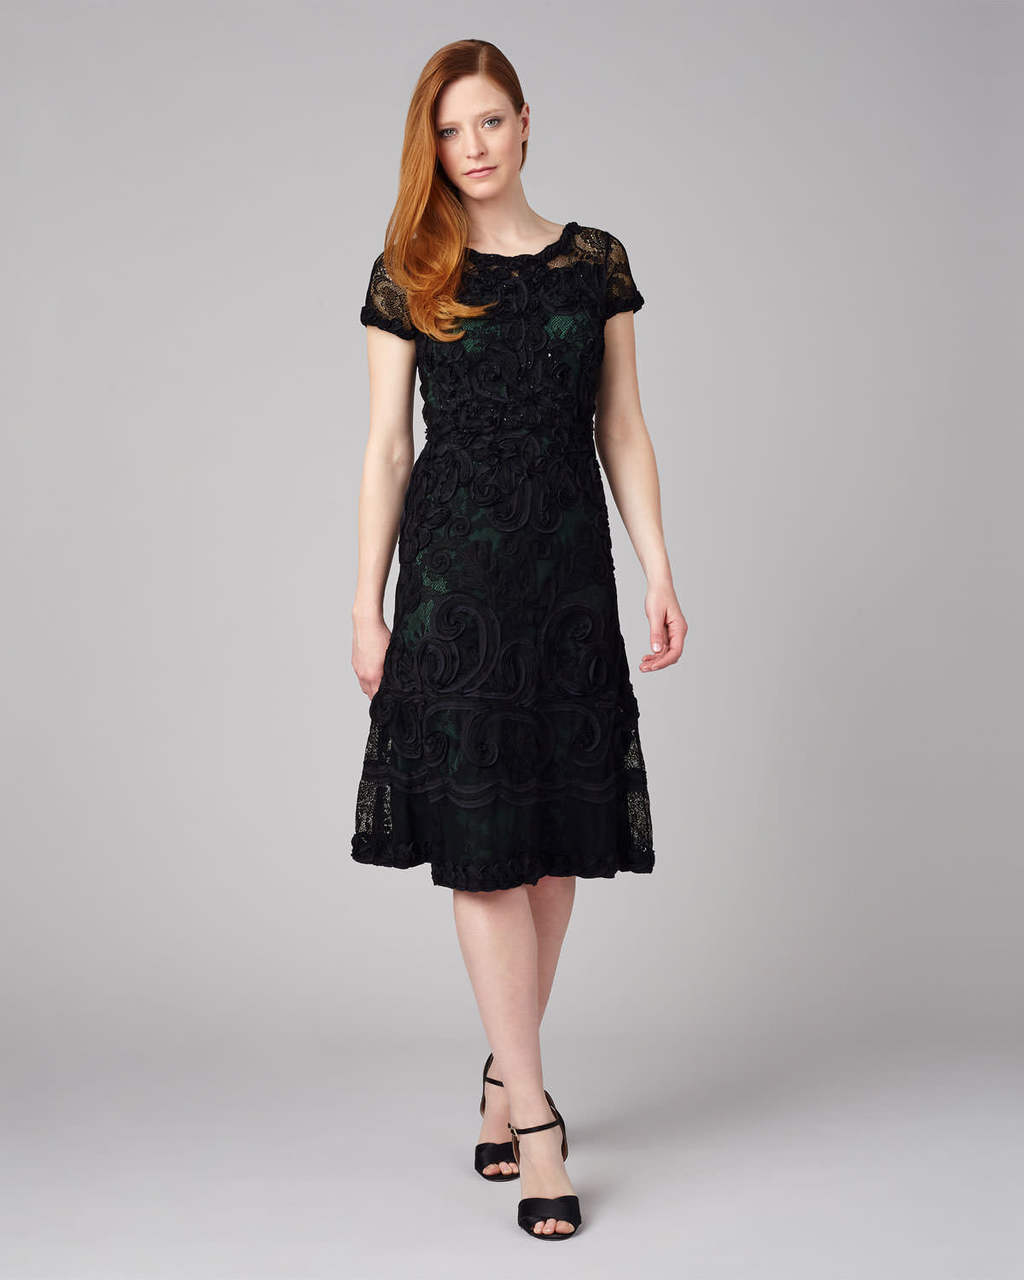 Tilly Tapework Dress - length: below the knee; pattern: plain; predominant colour: black; occasions: evening; fit: fitted at waist & bust; style: fit & flare; fibres: nylon - 100%; neckline: crew; sleeve length: short sleeve; sleeve style: standard; texture group: lace; pattern type: fabric; pattern size: standard; season: s/s 2016; wardrobe: event